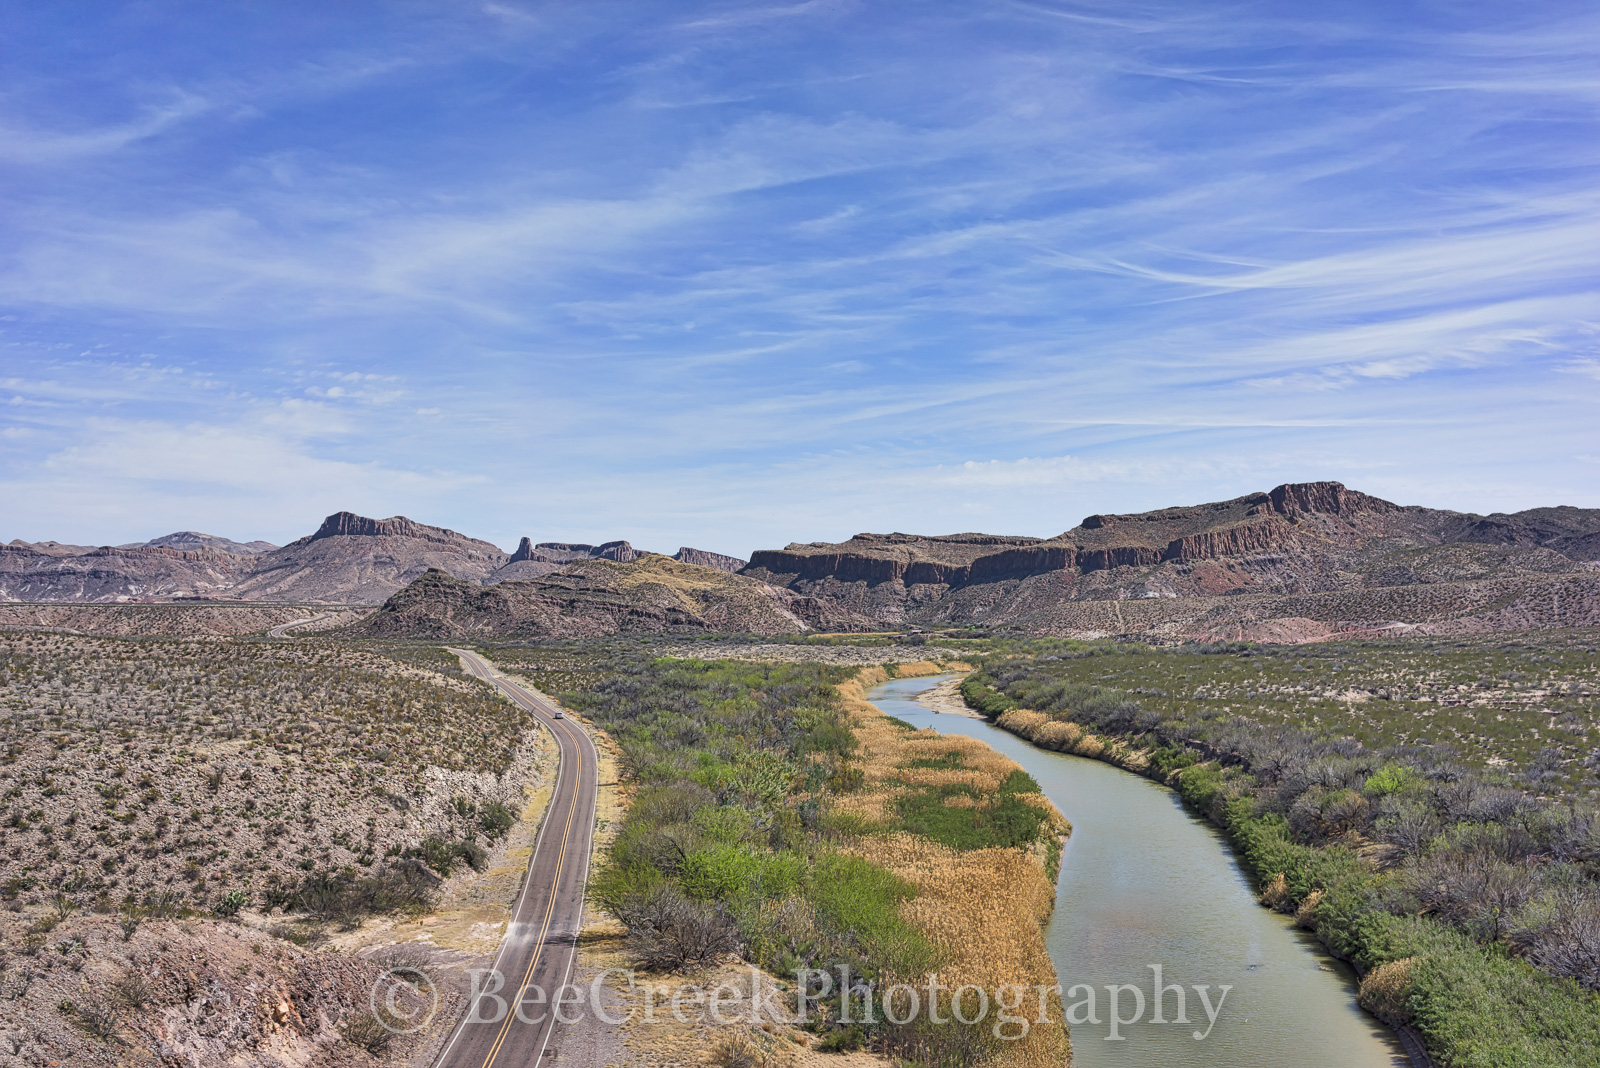 Big Bend State Park, Mountains, Rio Grande River, aerial, blue sky, landscape, mexico, scenic, , photo